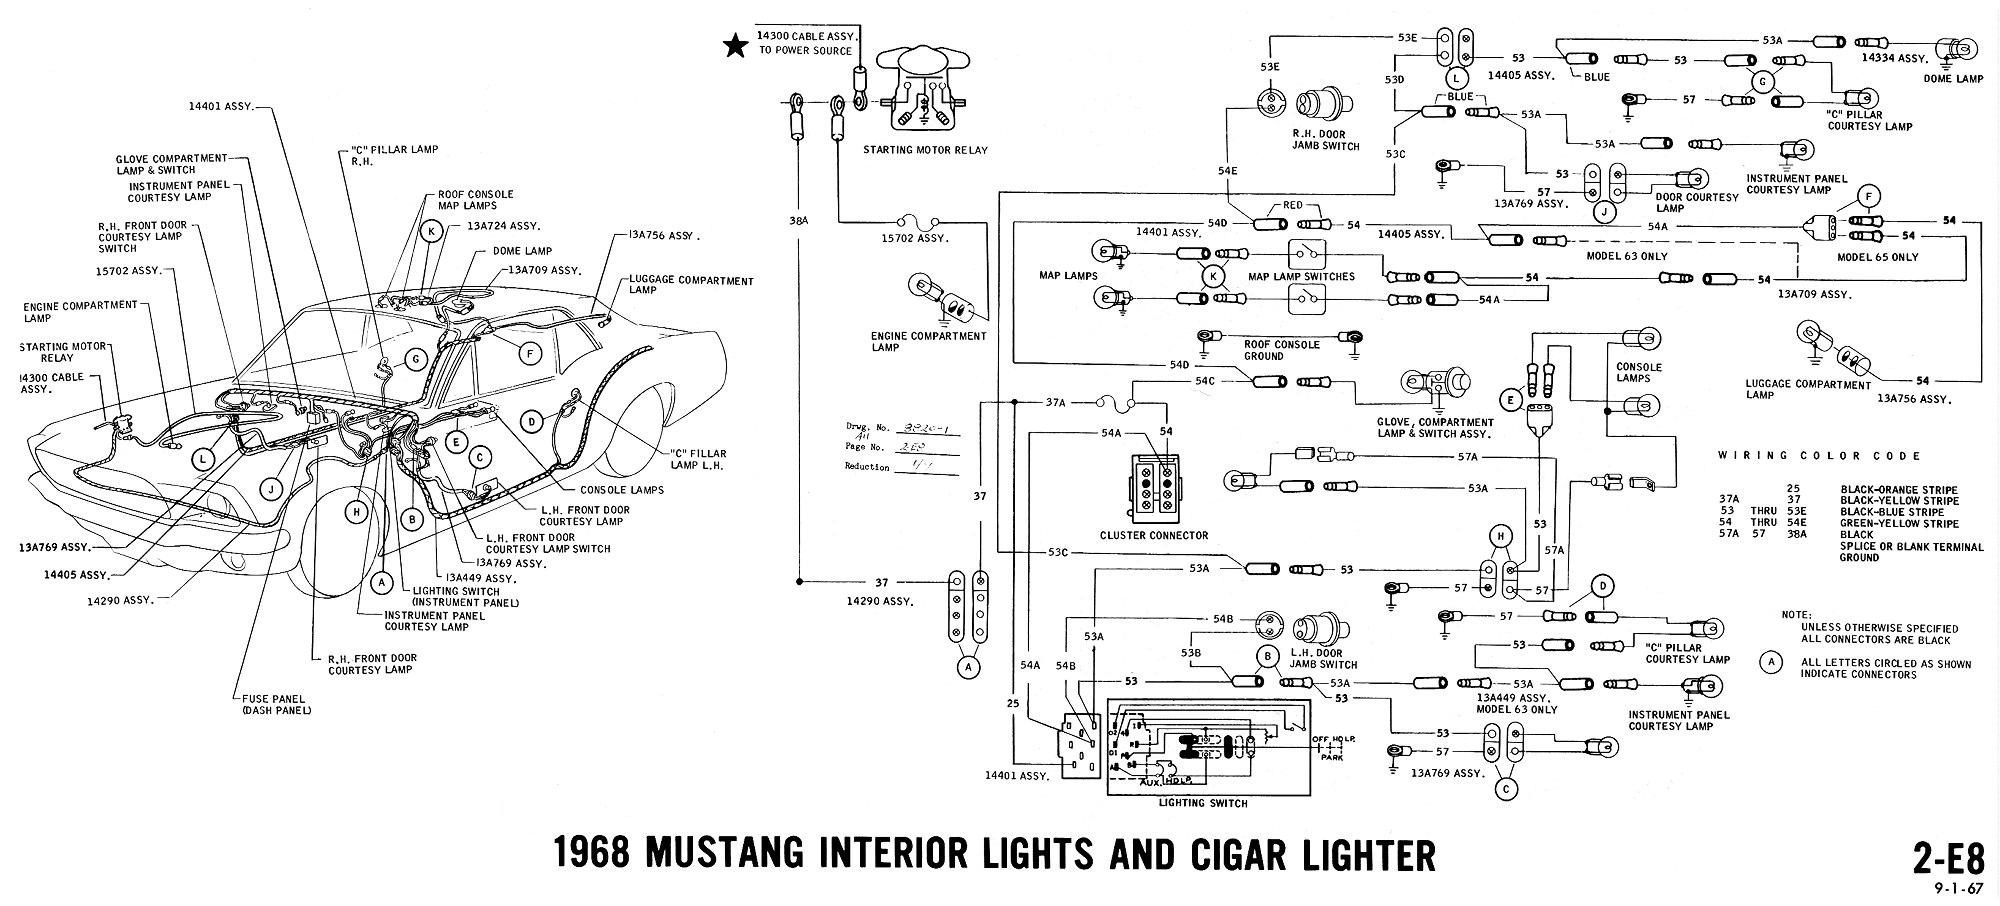 1968 mustang wiring diagrams evolving software 1967 Chevelle Wiring Diagrams  Online 1978 El Camino Specifications